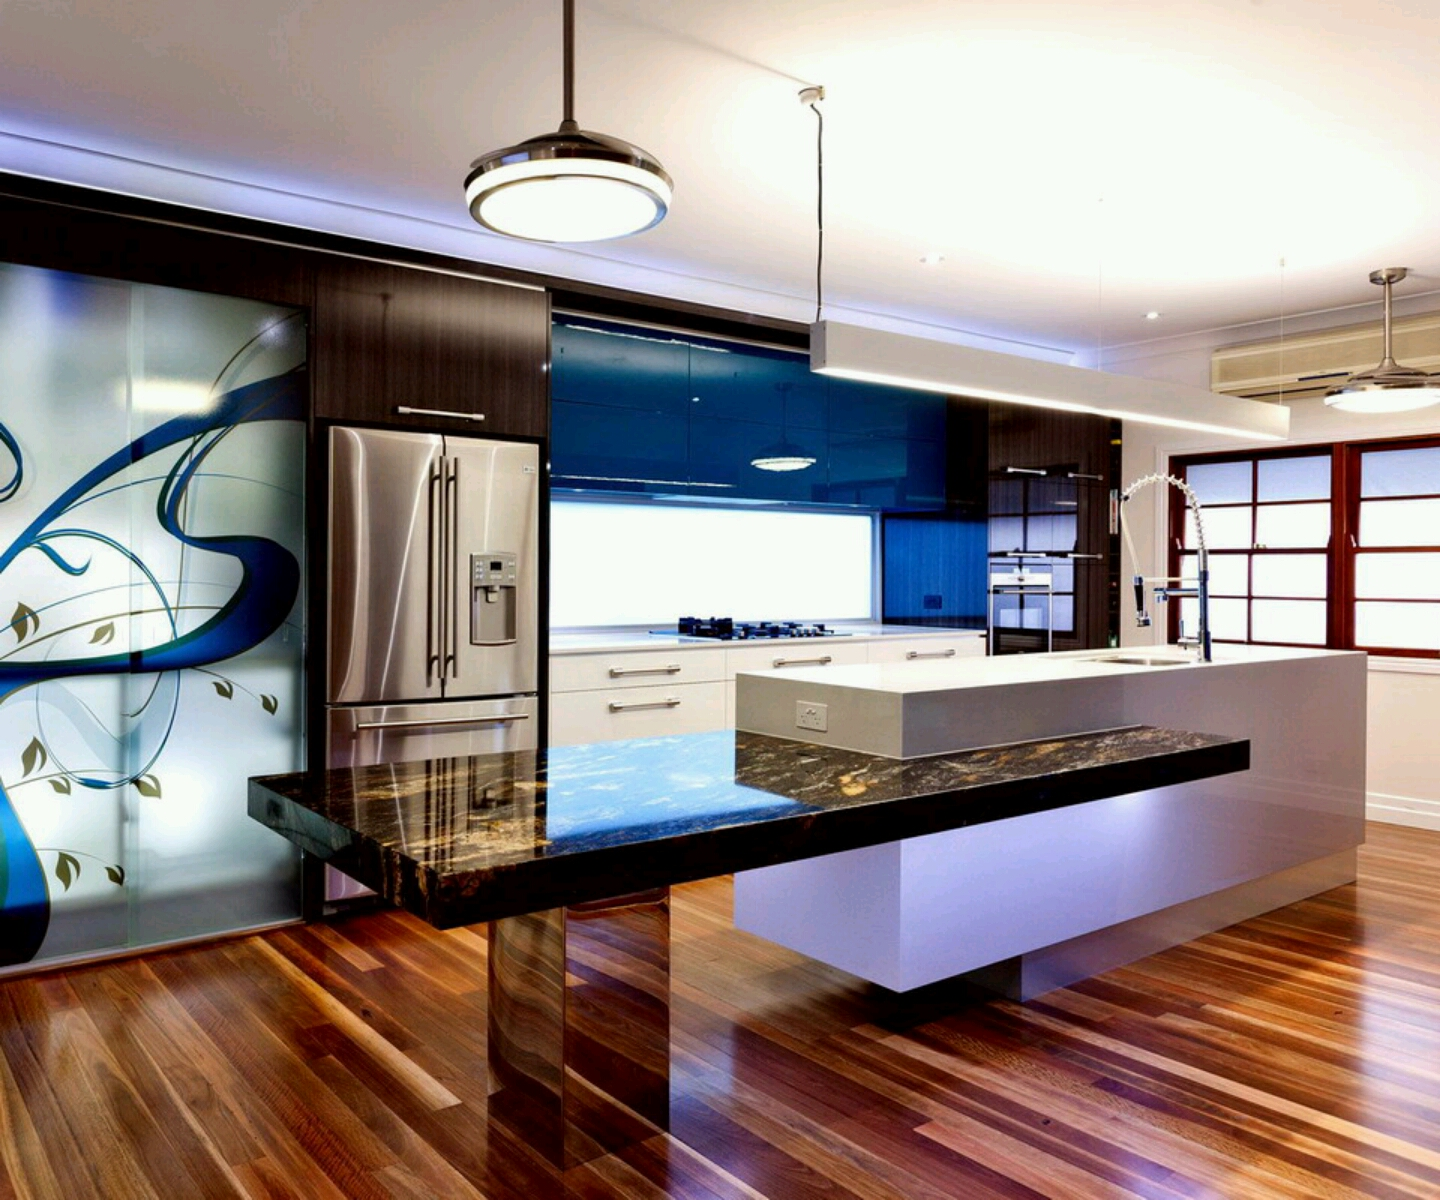 Ultra modern kitchen designs ideas new home designs Latest kitchen designs photos